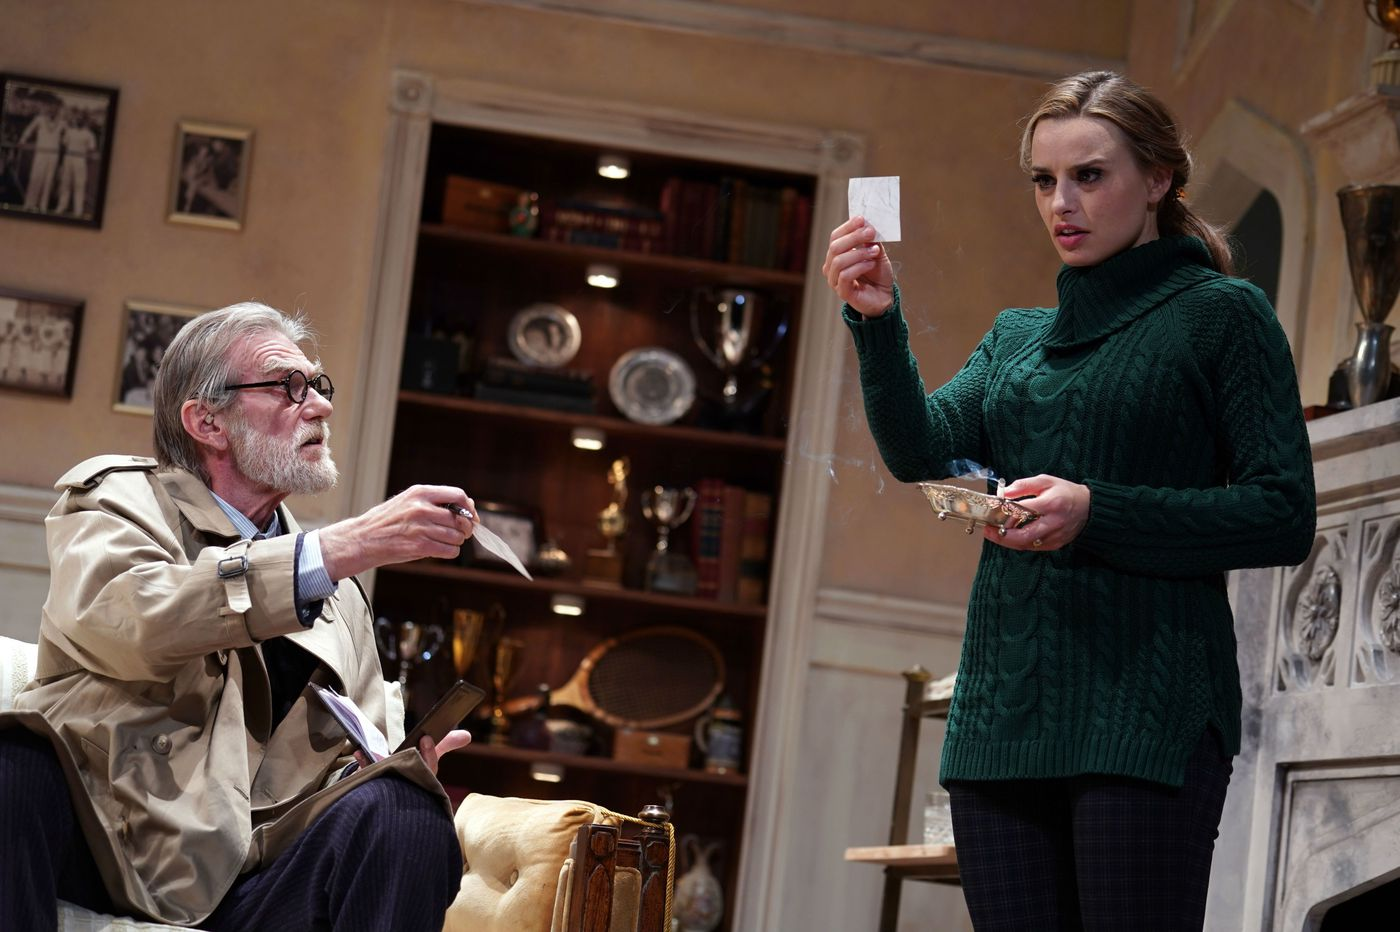 'Dial M for Murder' at Bucks County Playhouse: A production distracted by the play's own razzle-dazzle